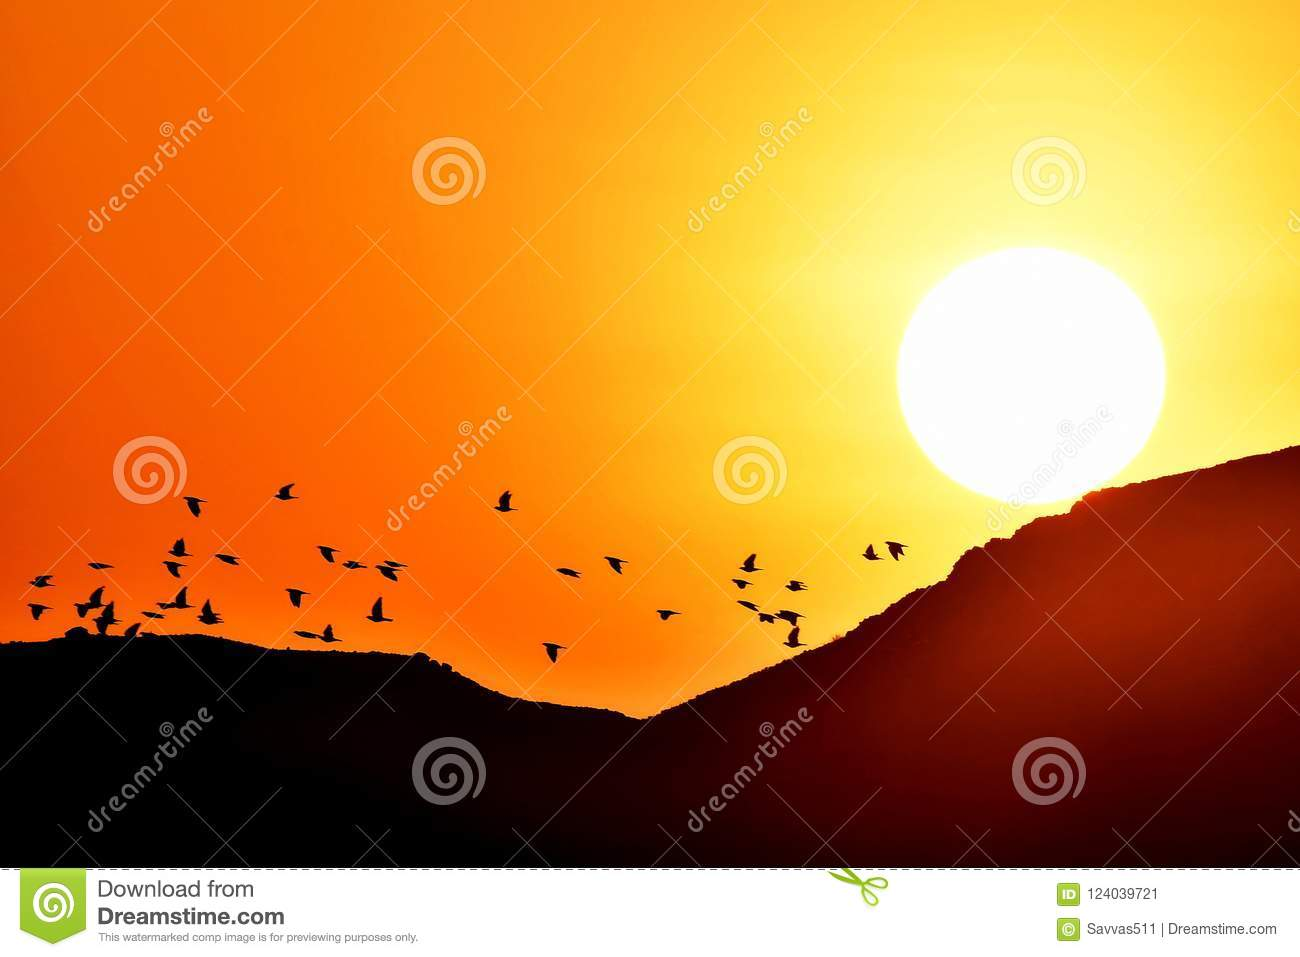 Birds Flying At Sunrise As The Sun Rises Stock Image - Image of ...